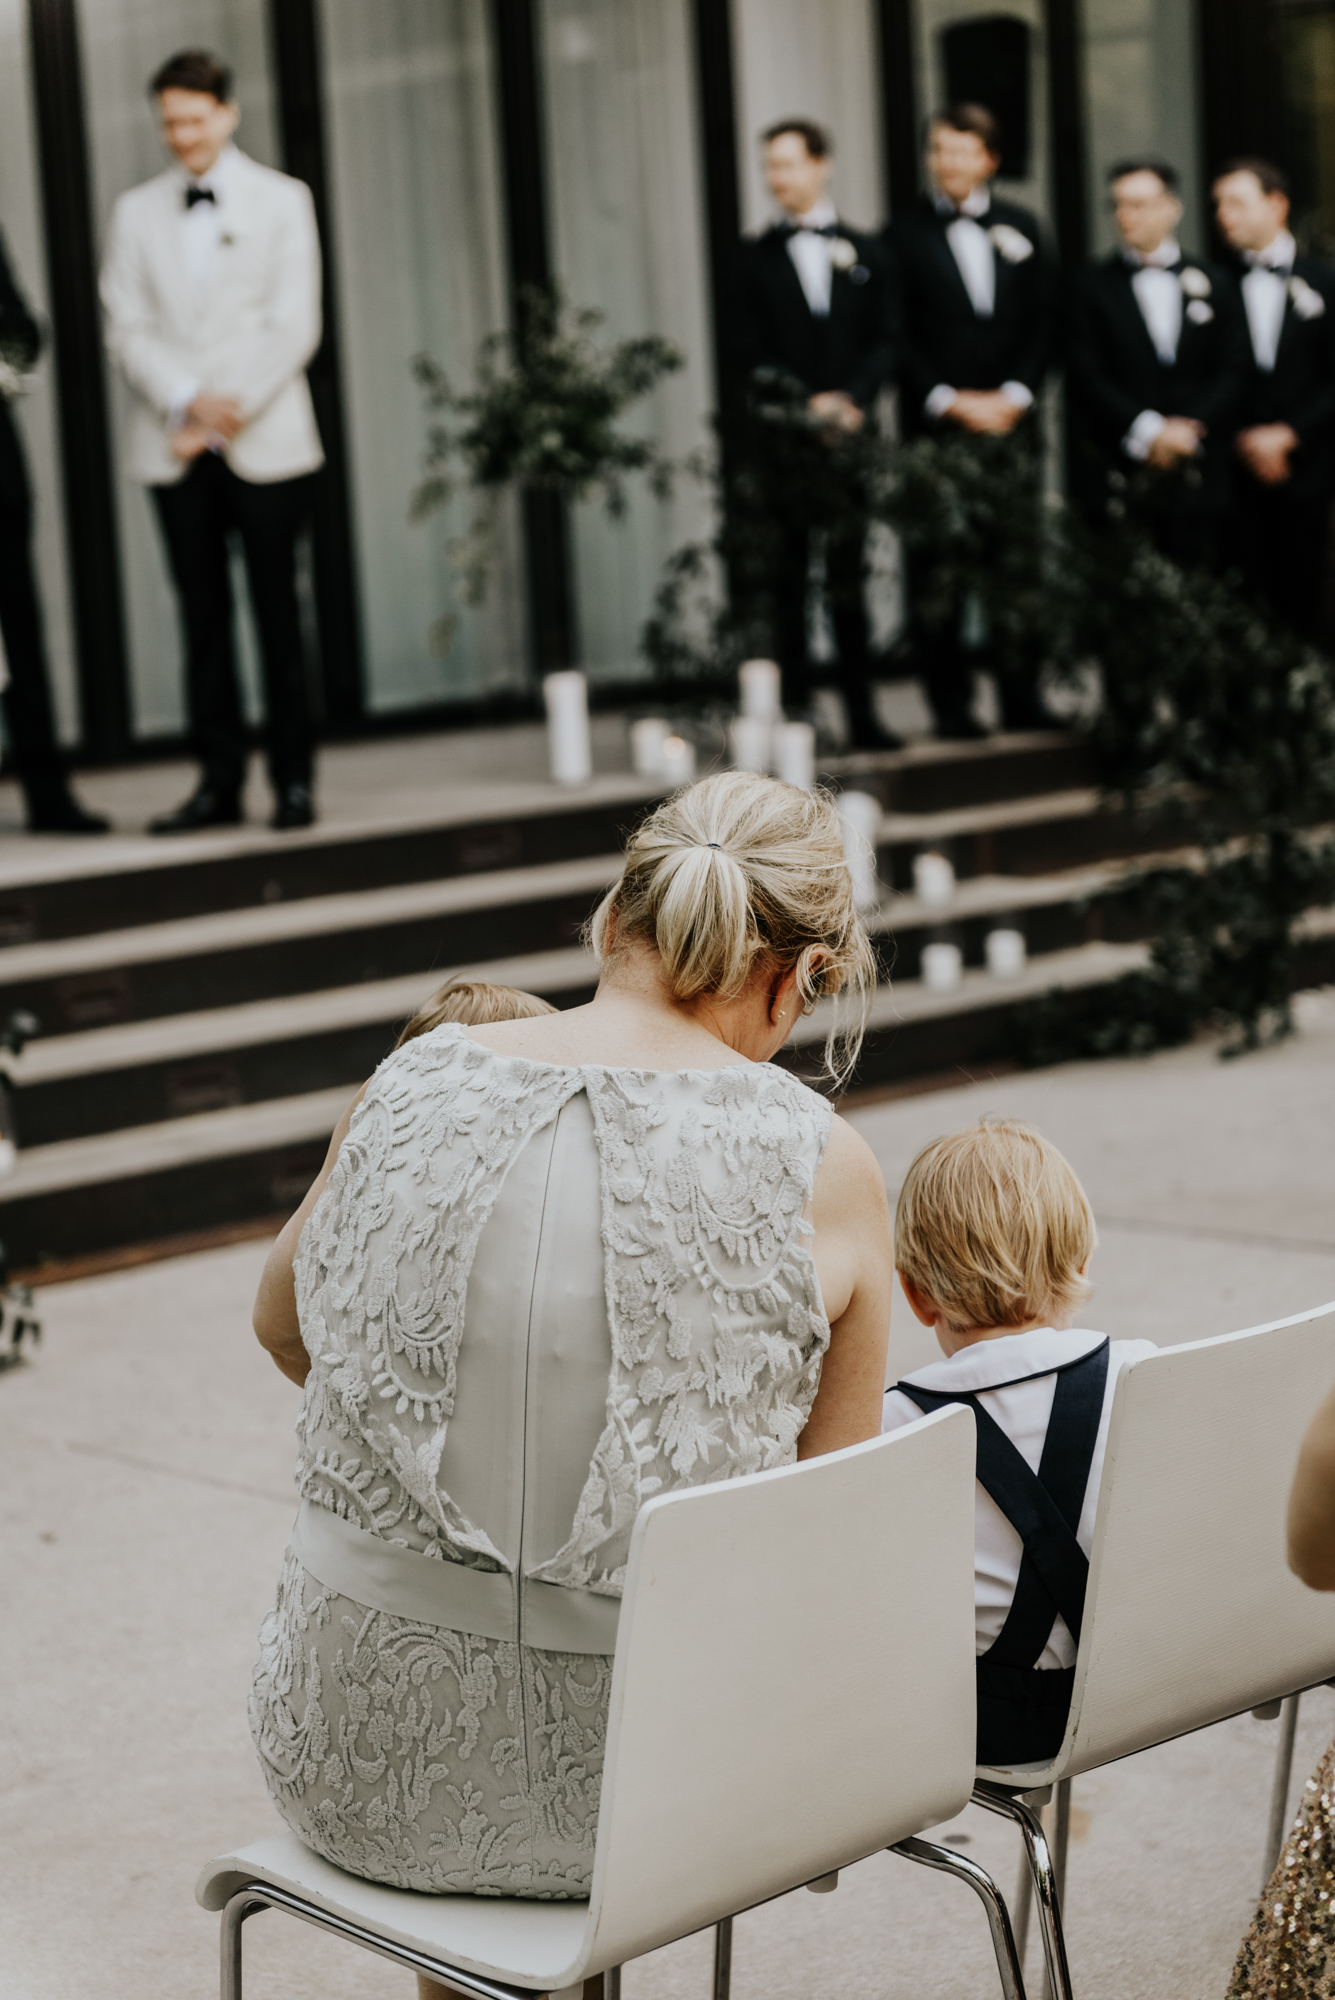 Intimate Wedding day moments at South Congress Hotel in Austin, Texas